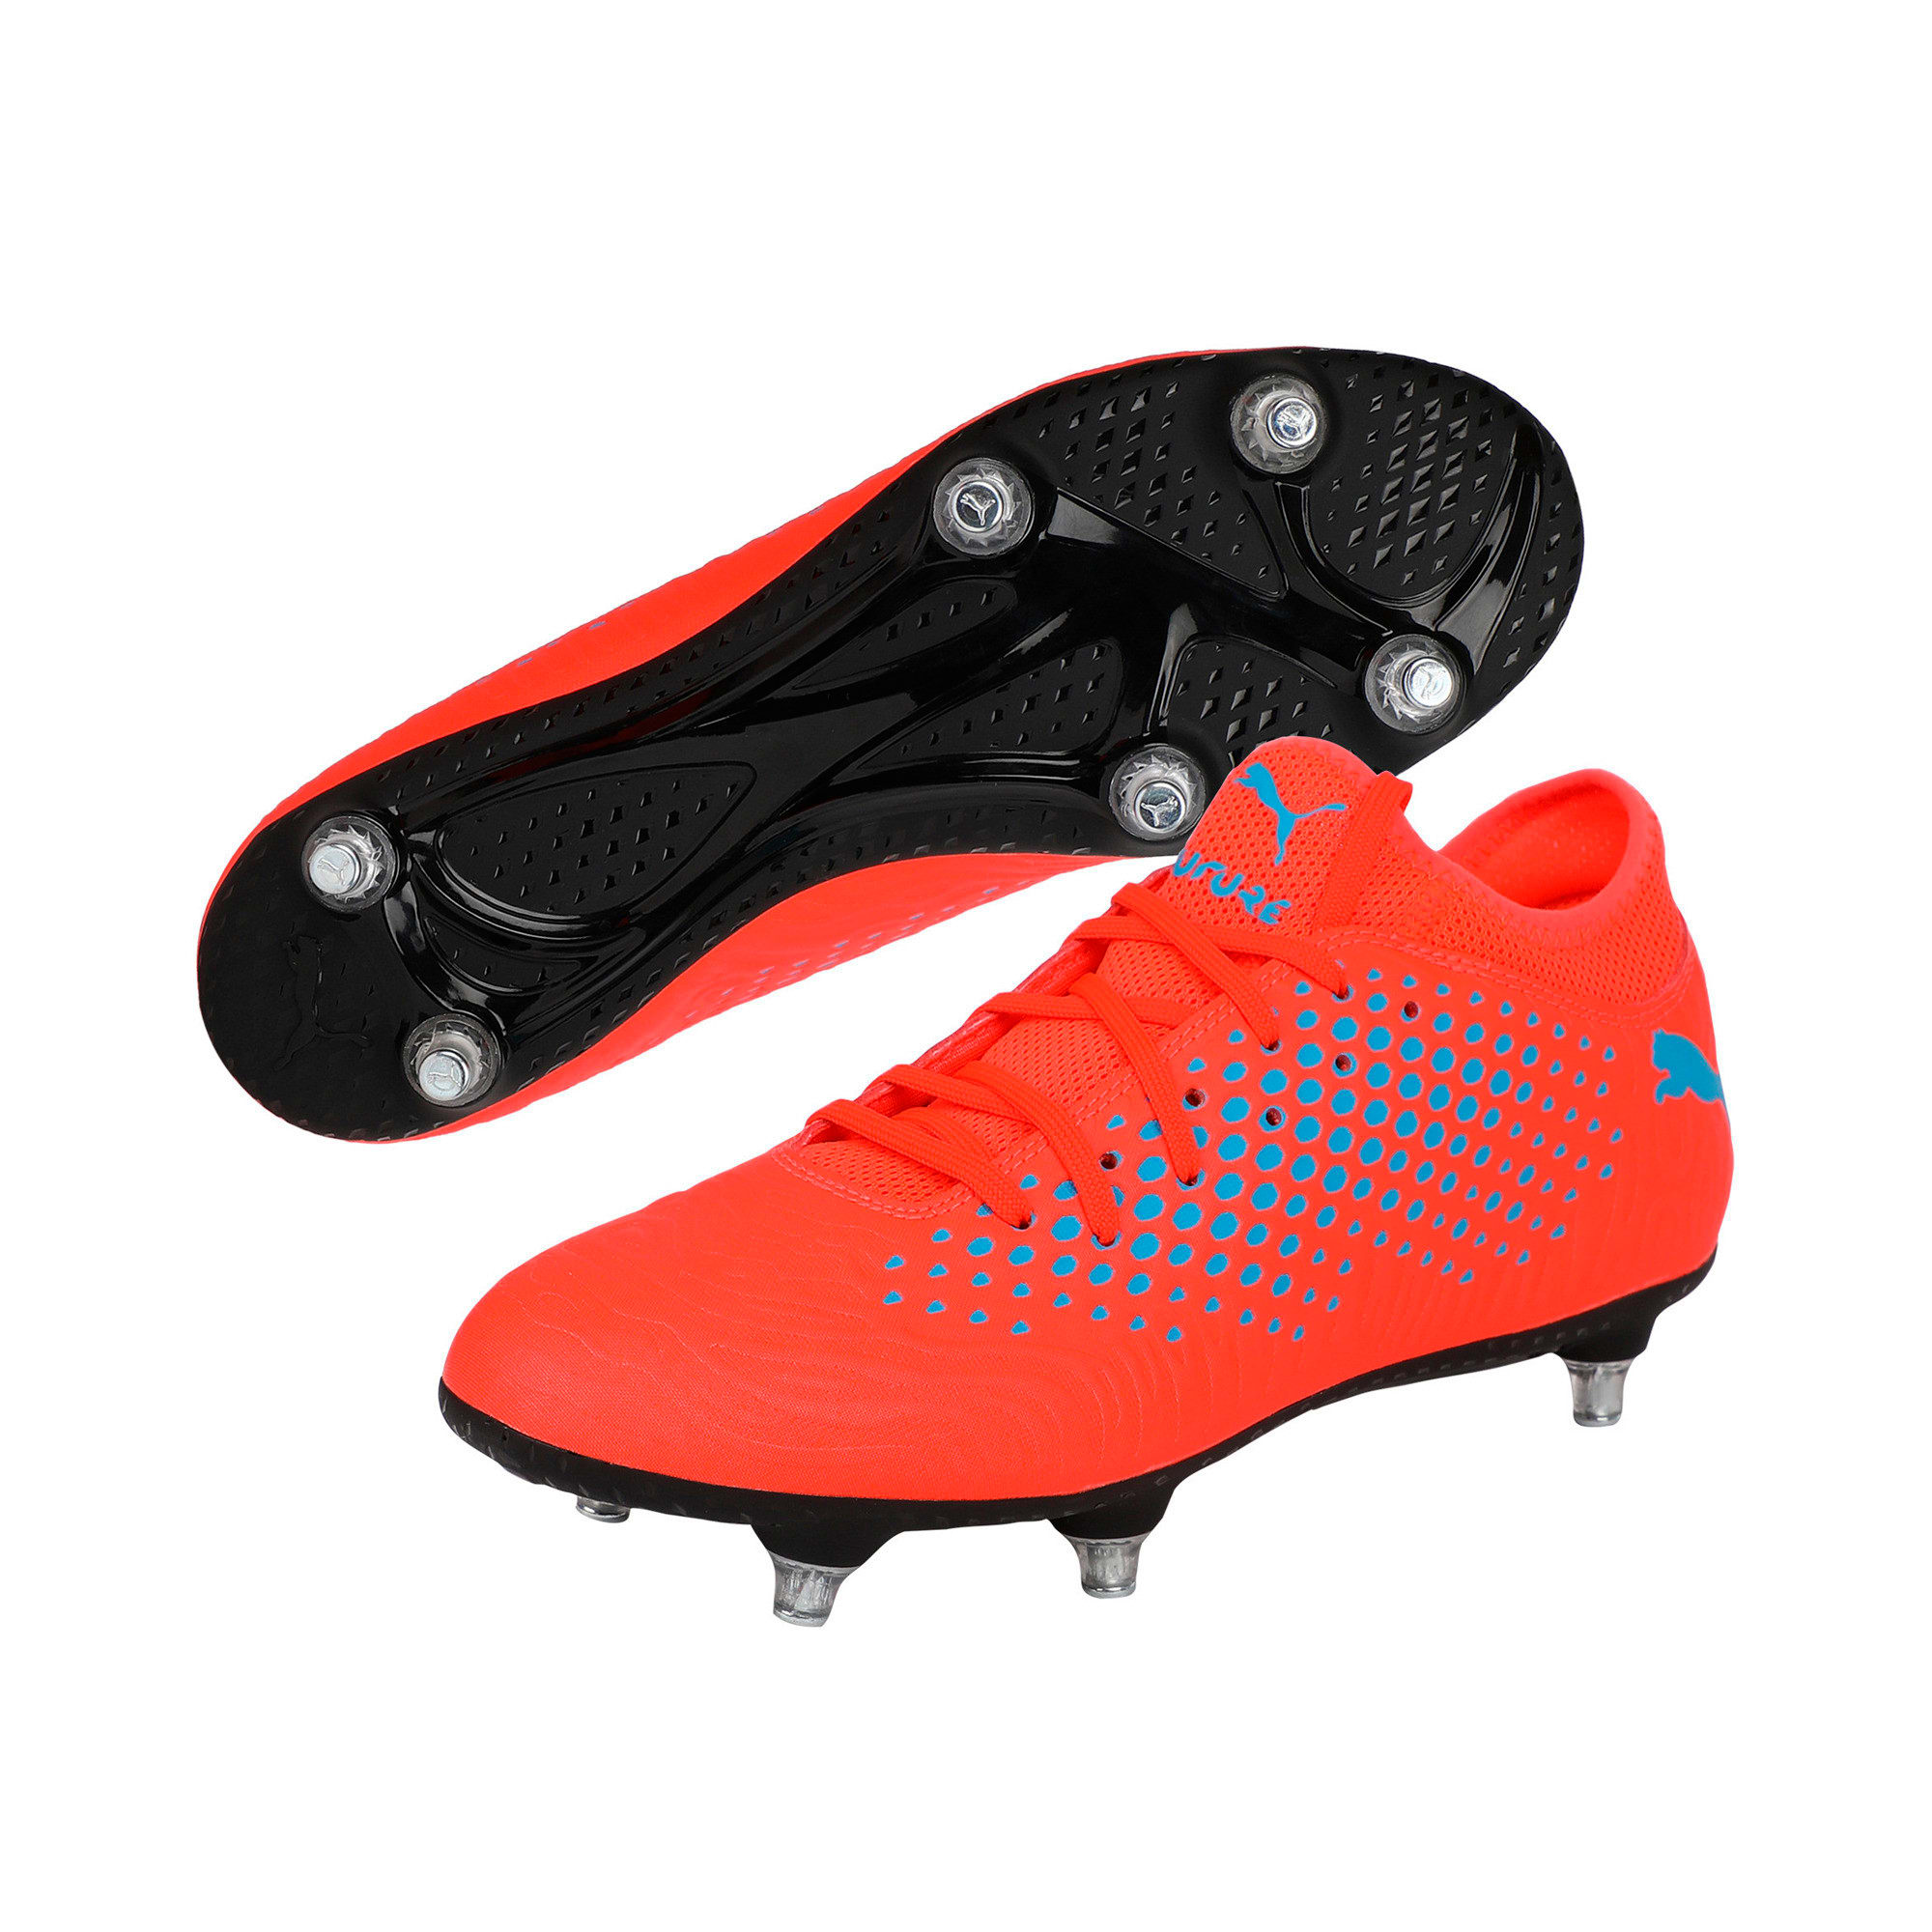 Thumbnail 2 of FUTURE 19.4 SG Men's Football Boots, Red Blast-Bleu Azur, medium-IND